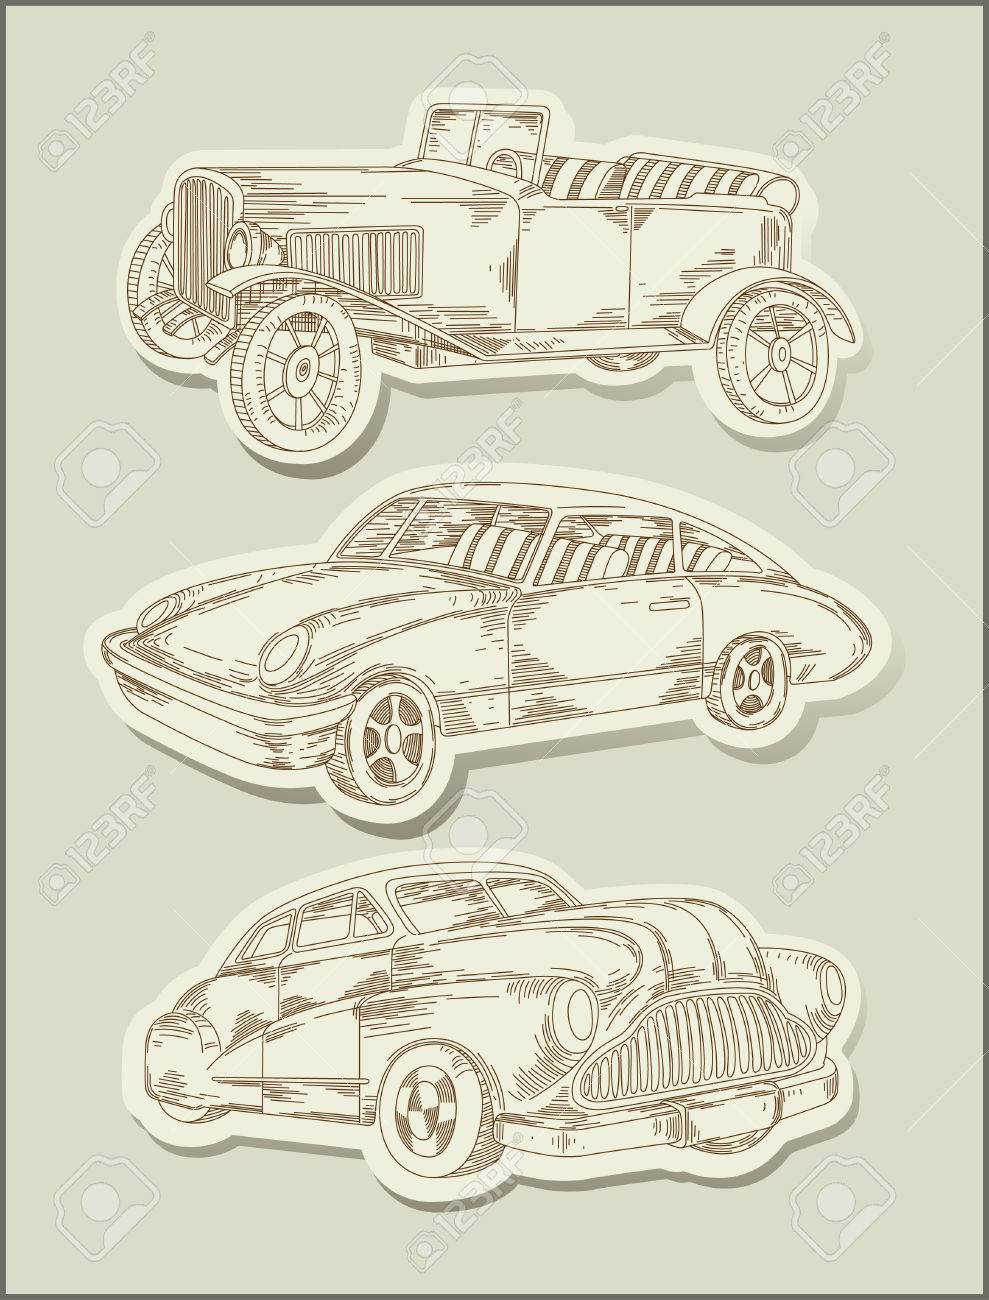 Vintage Cars Line Drawing Objects Stock Vector